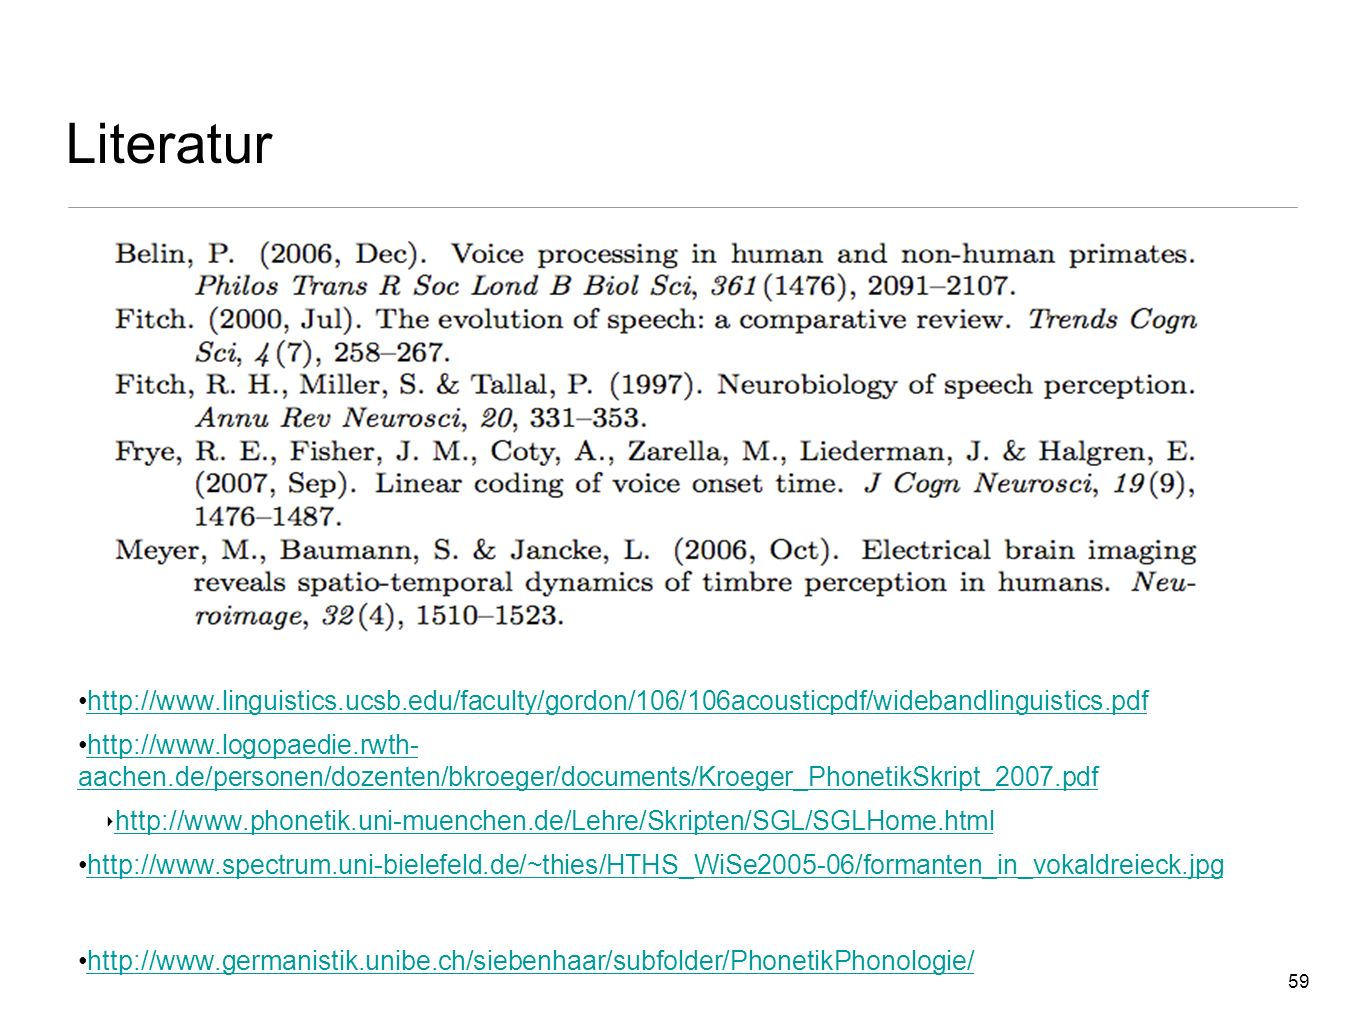 Literatur http://www.linguistics.ucsb.edu/faculty/gordon/106/106acousticpdf/widebandlinguistics.pdf.